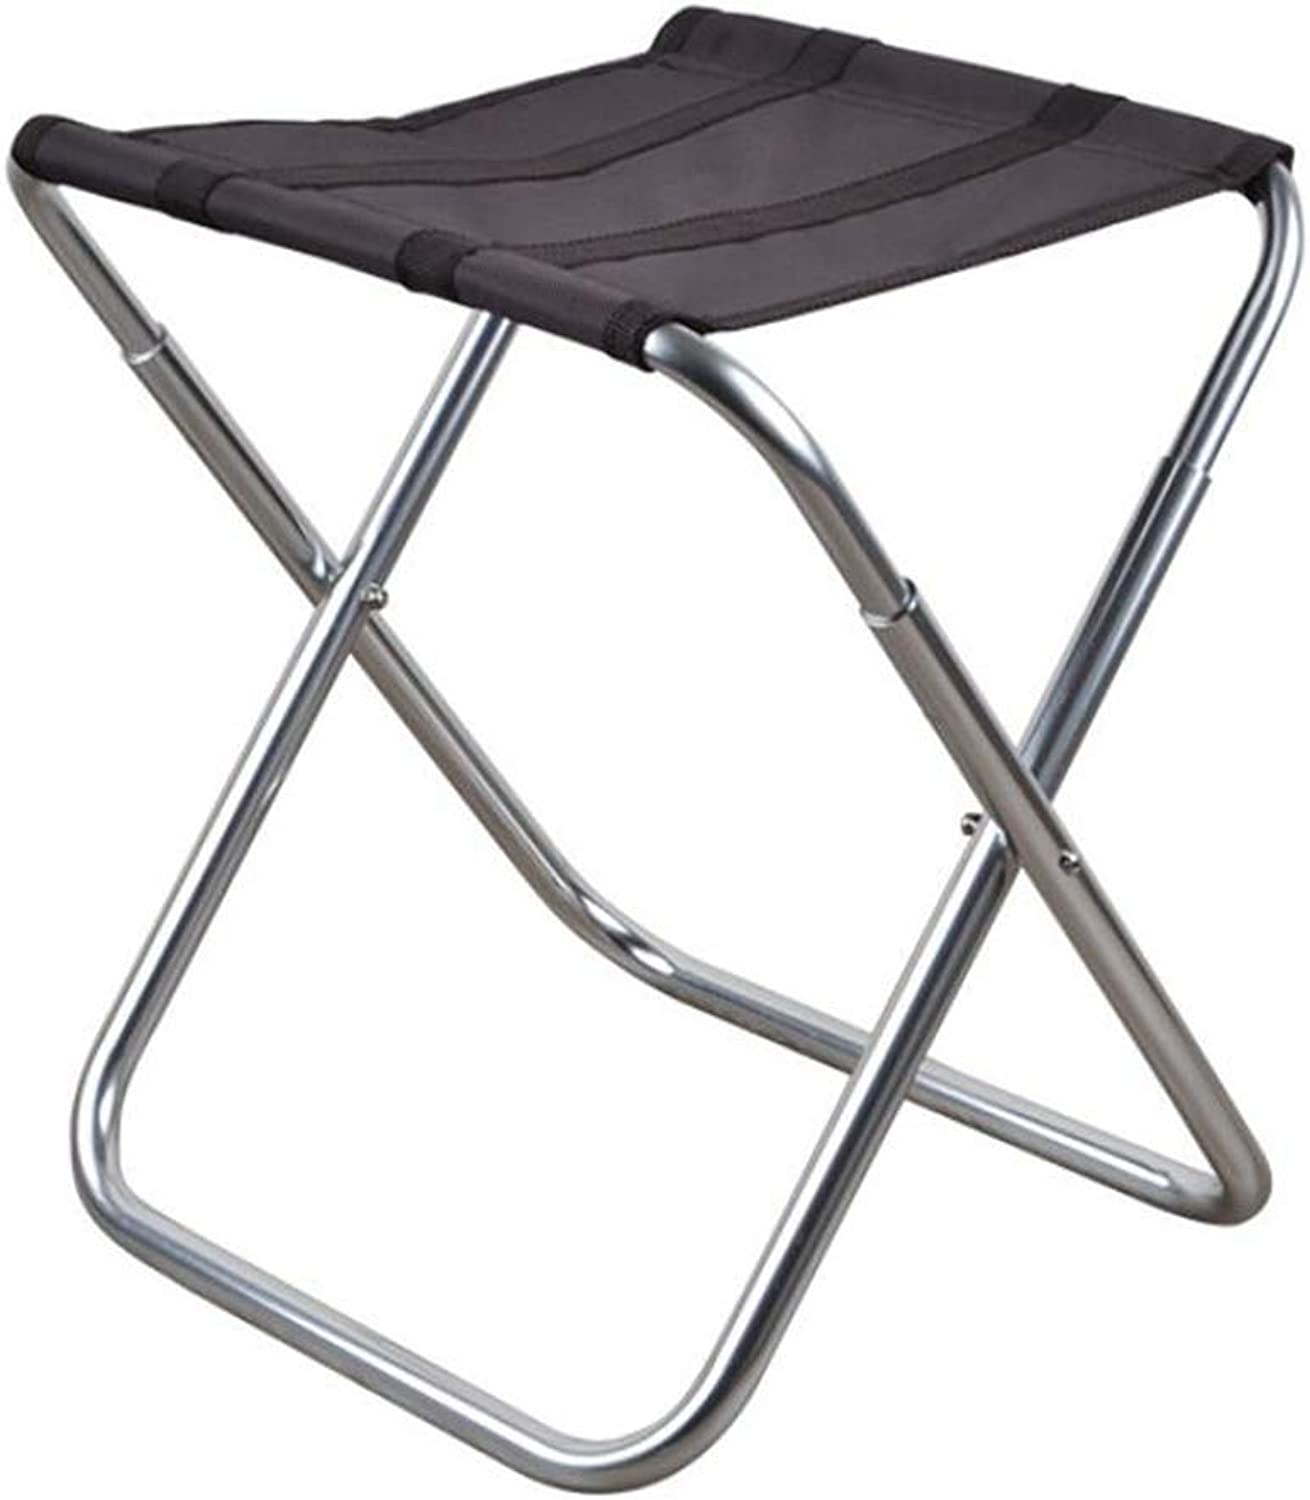 Outdoor Folding Portable Camping Stool Aluminum Bracket Camping Travel Chair Hiking Sketch Fishing Barbecue Bench Backpack Seat